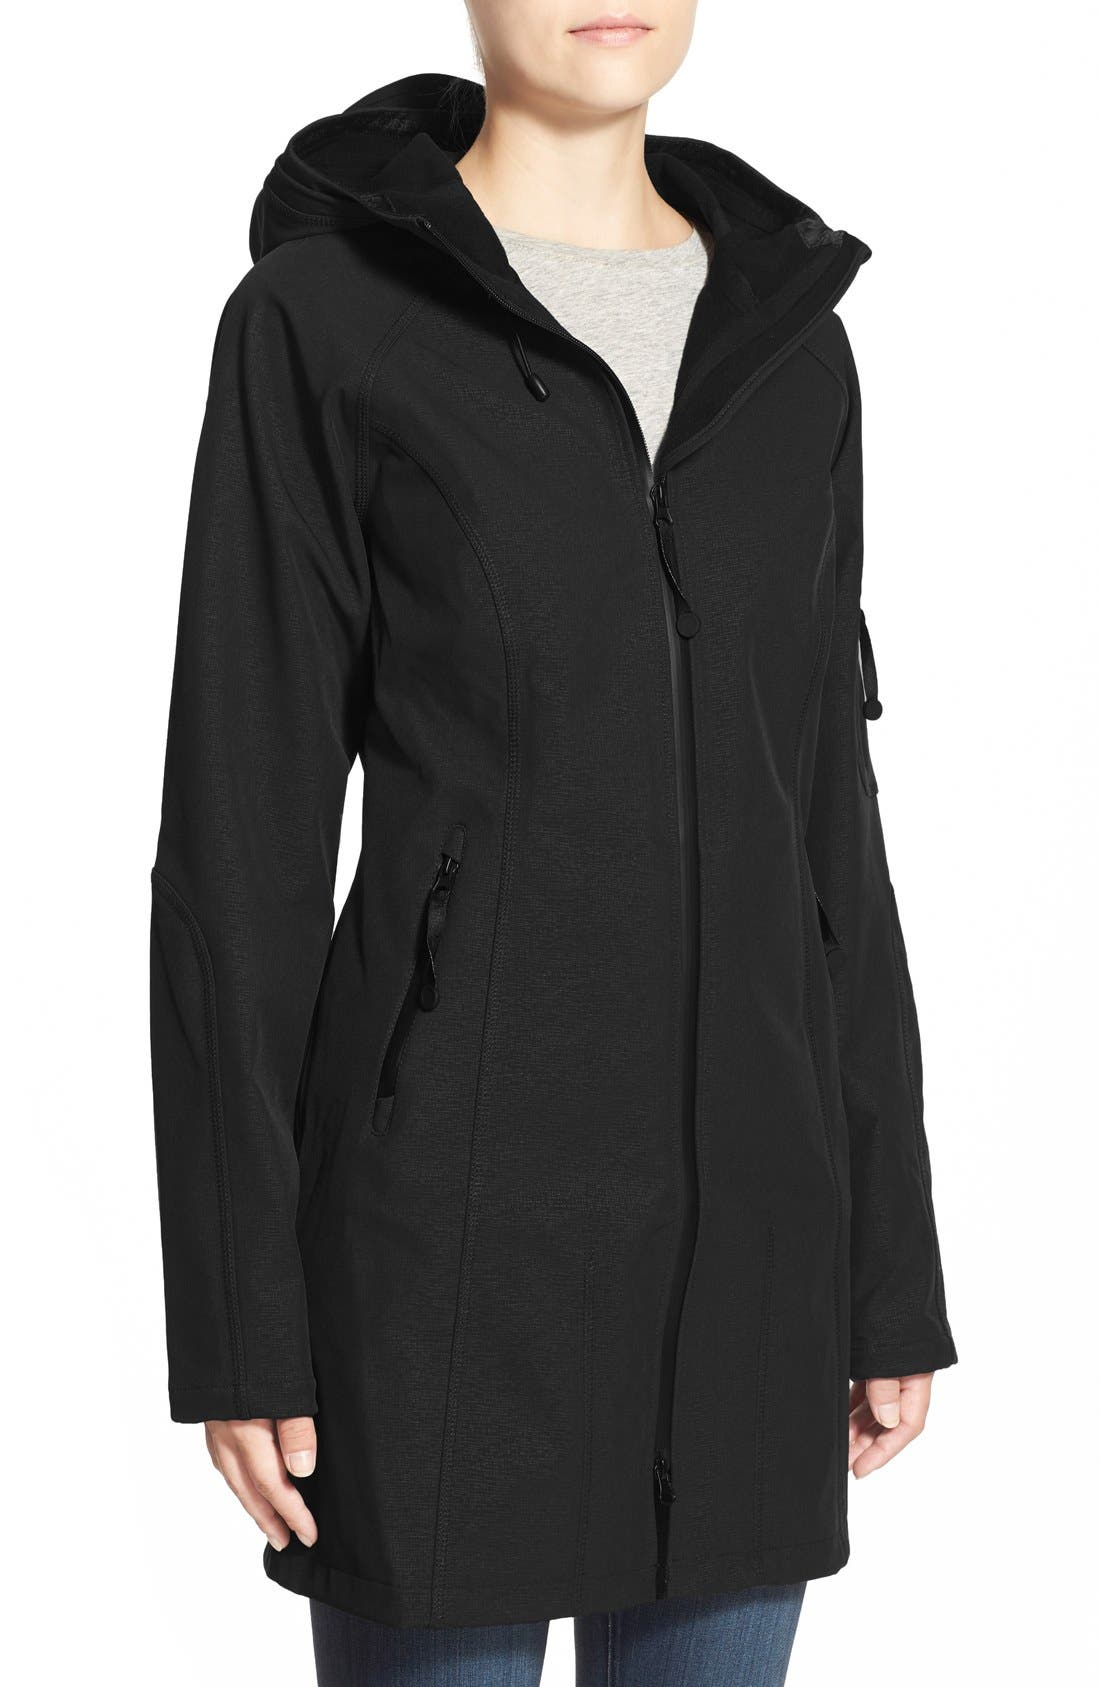 Regular Fit Hooded Raincoat,                             Main thumbnail 1, color,                             Black